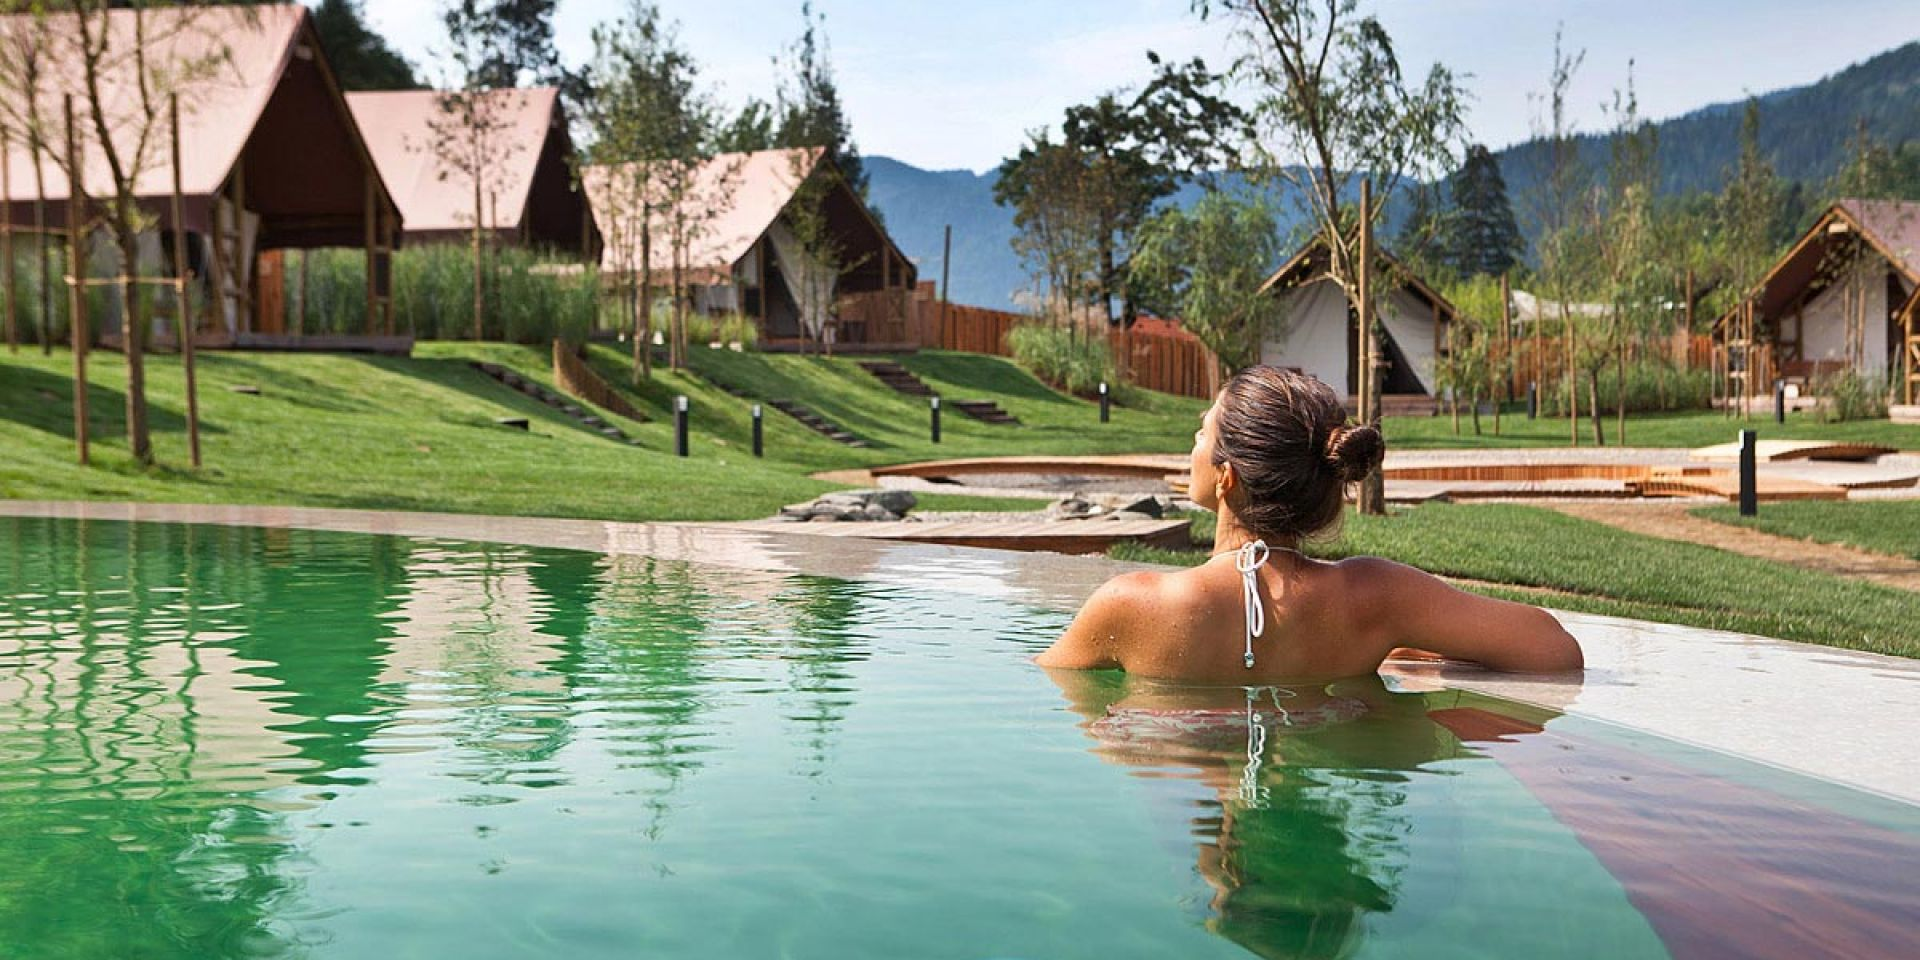 Glamping Sites With Hot Tubs – The Very Best Hot Tub Glamping – Cool Camping